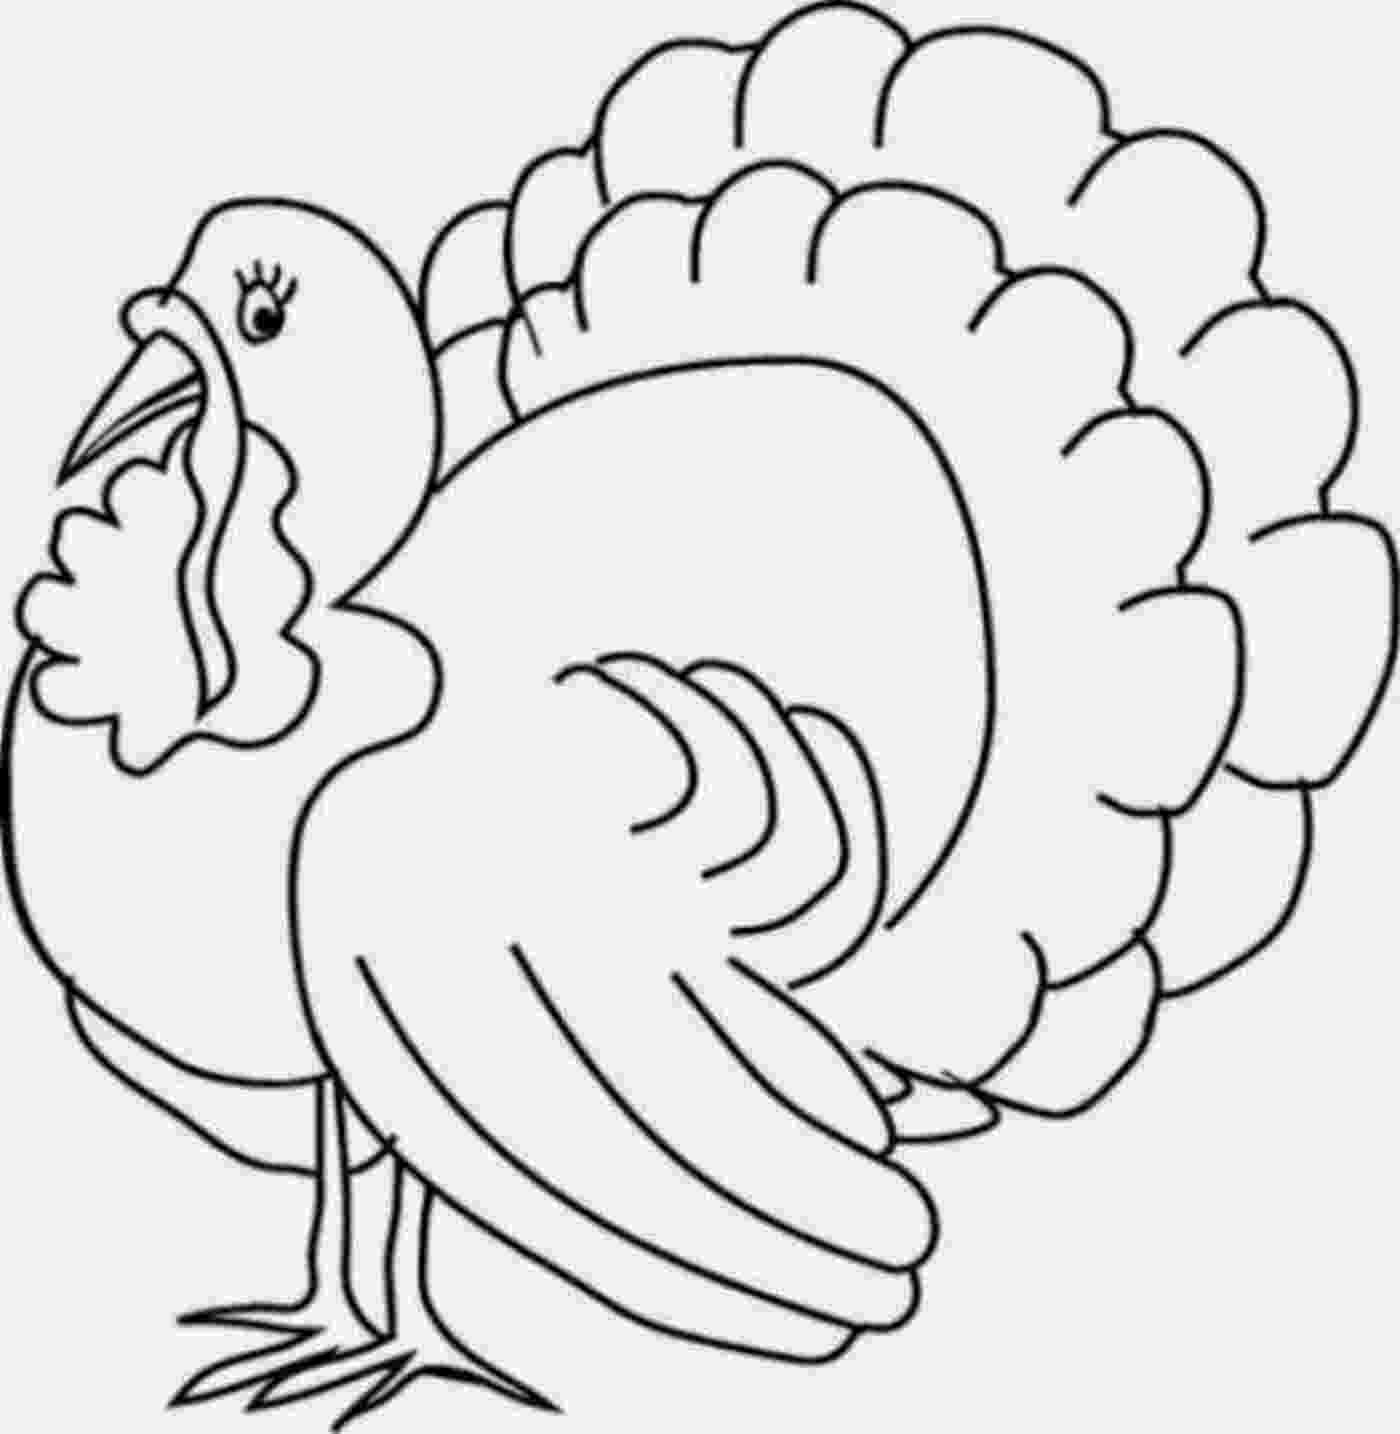 turkey coloring turkey coloring pages to download and print for free turkey coloring 1 1